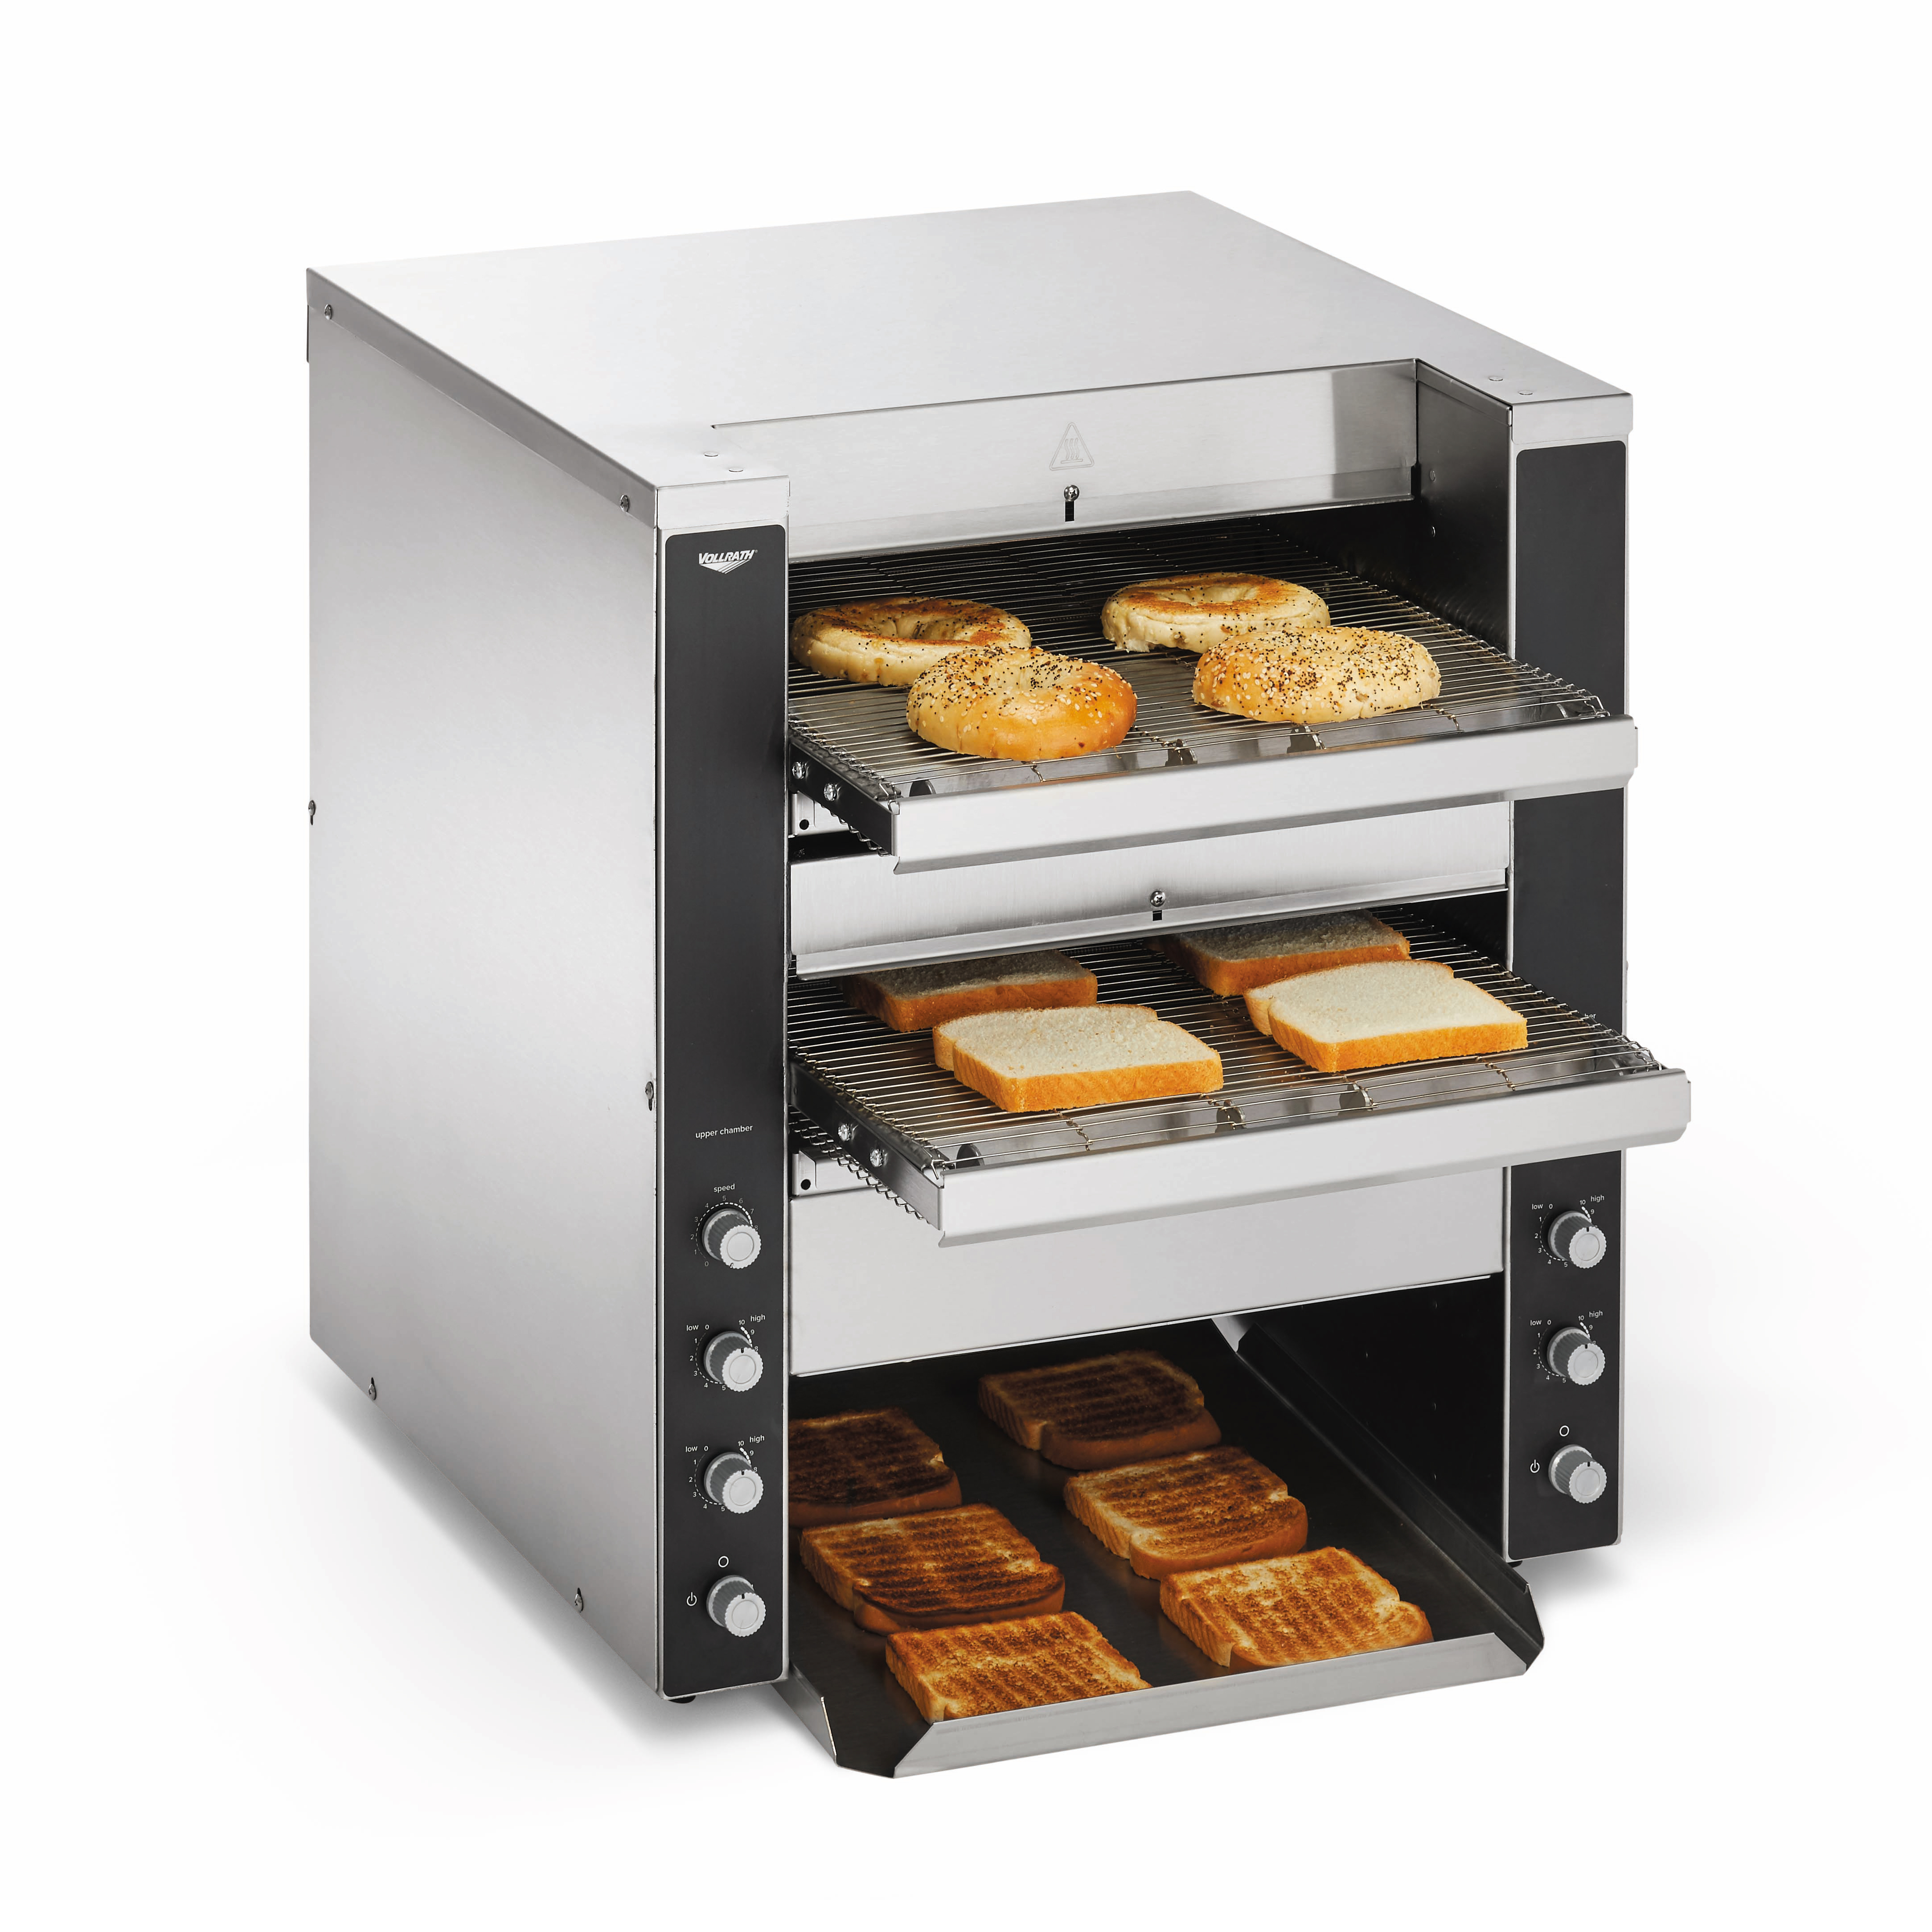 Vollrath CVT4-220DUAL toaster, conveyor type